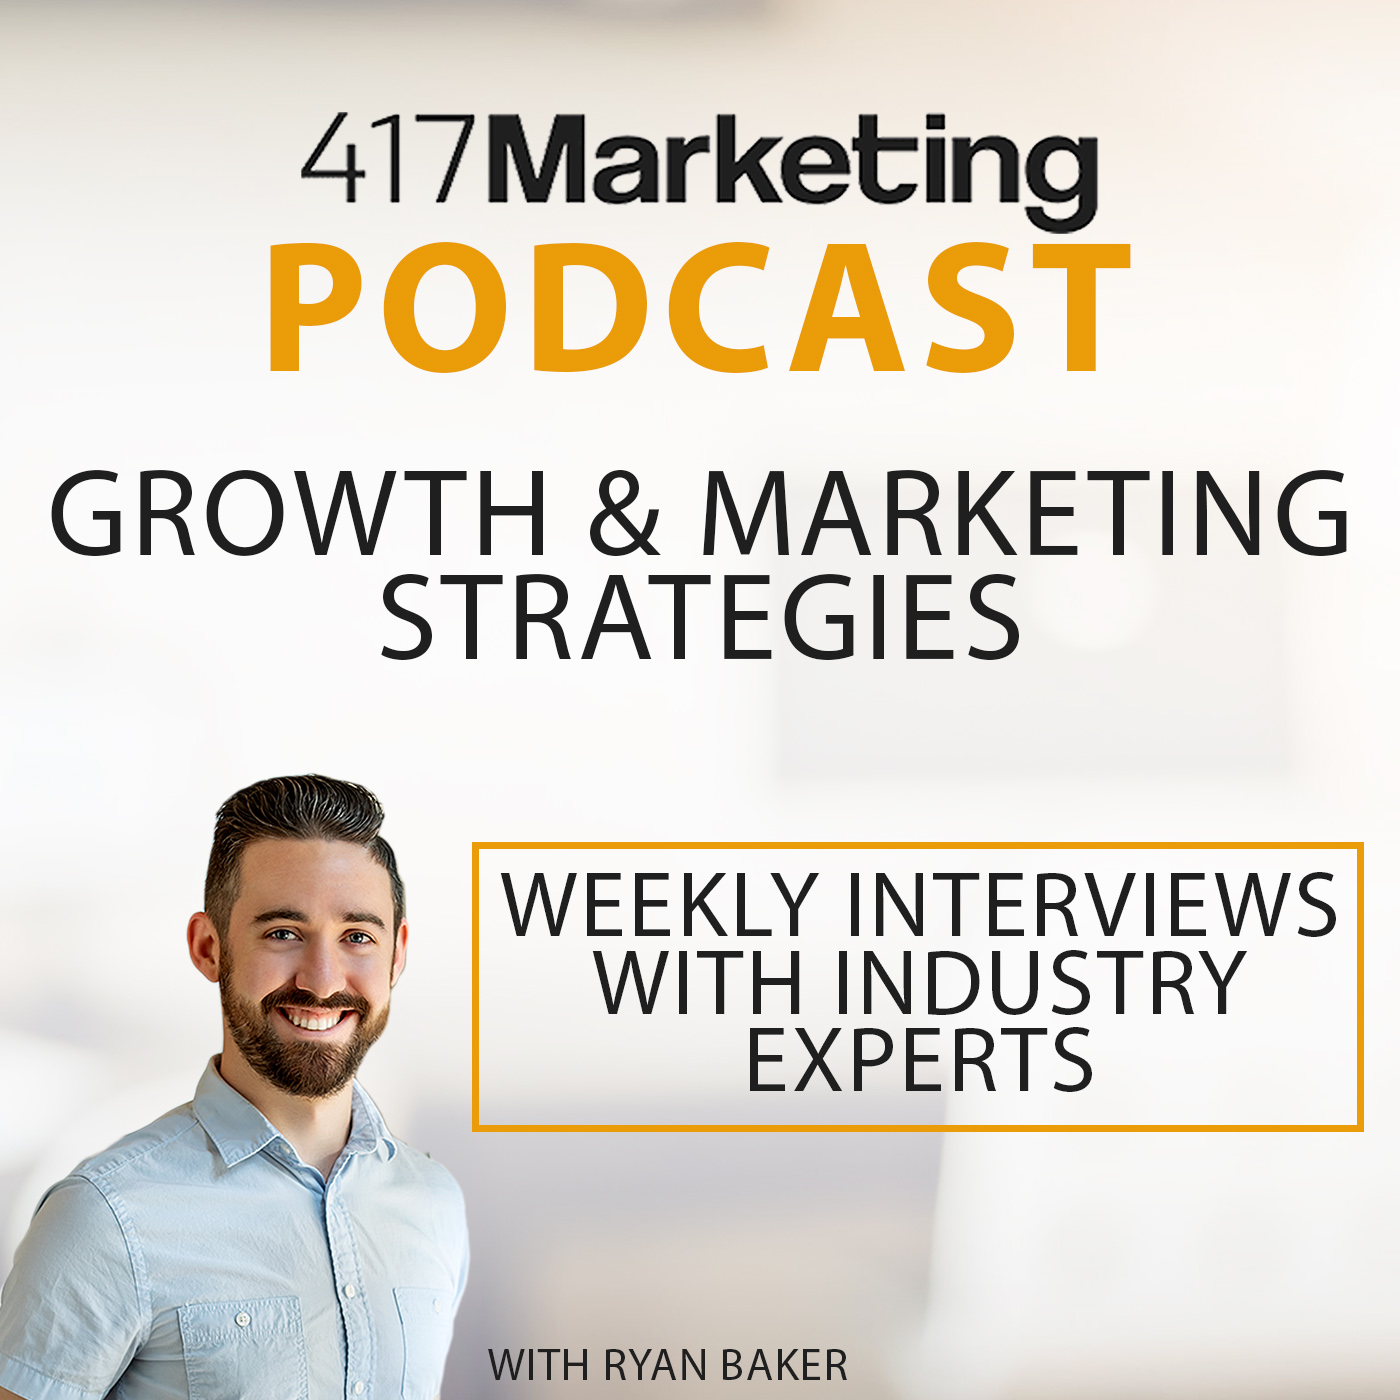 417 Marketing Podcast - Growth & Marketing Strategies From The Experts show art